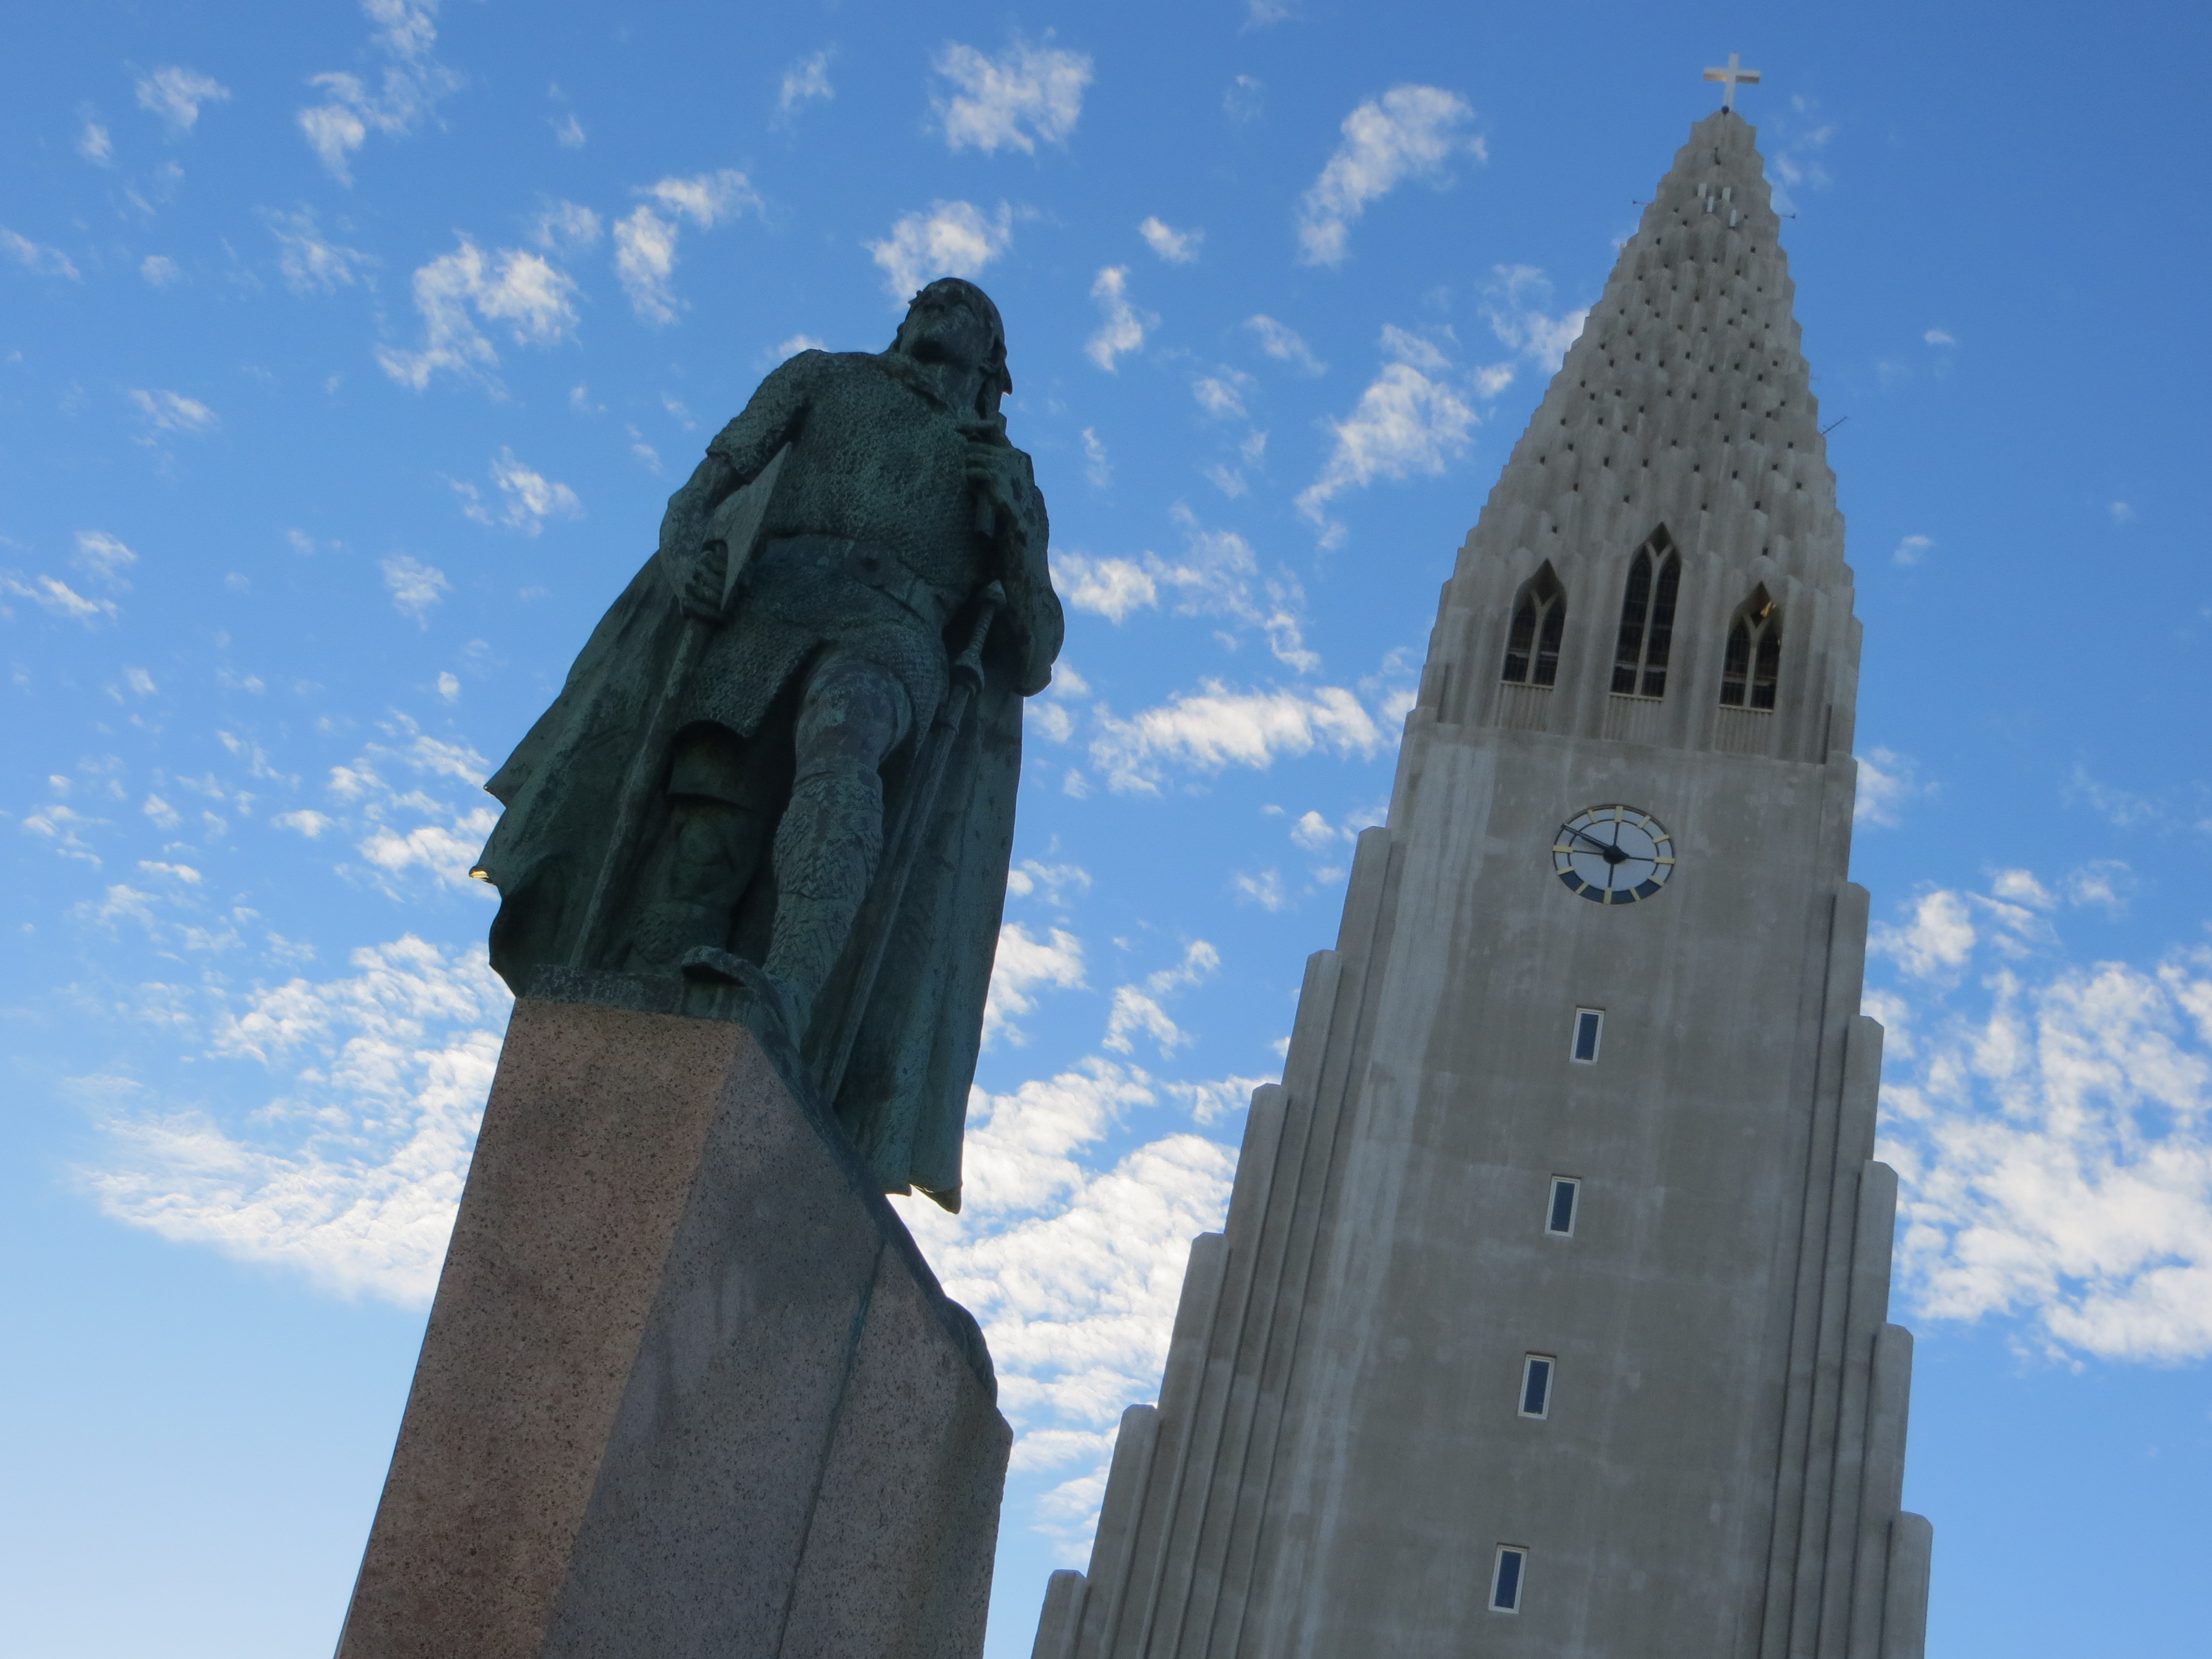 Iceland Leif Ericson The Axe Factor And The Vikings